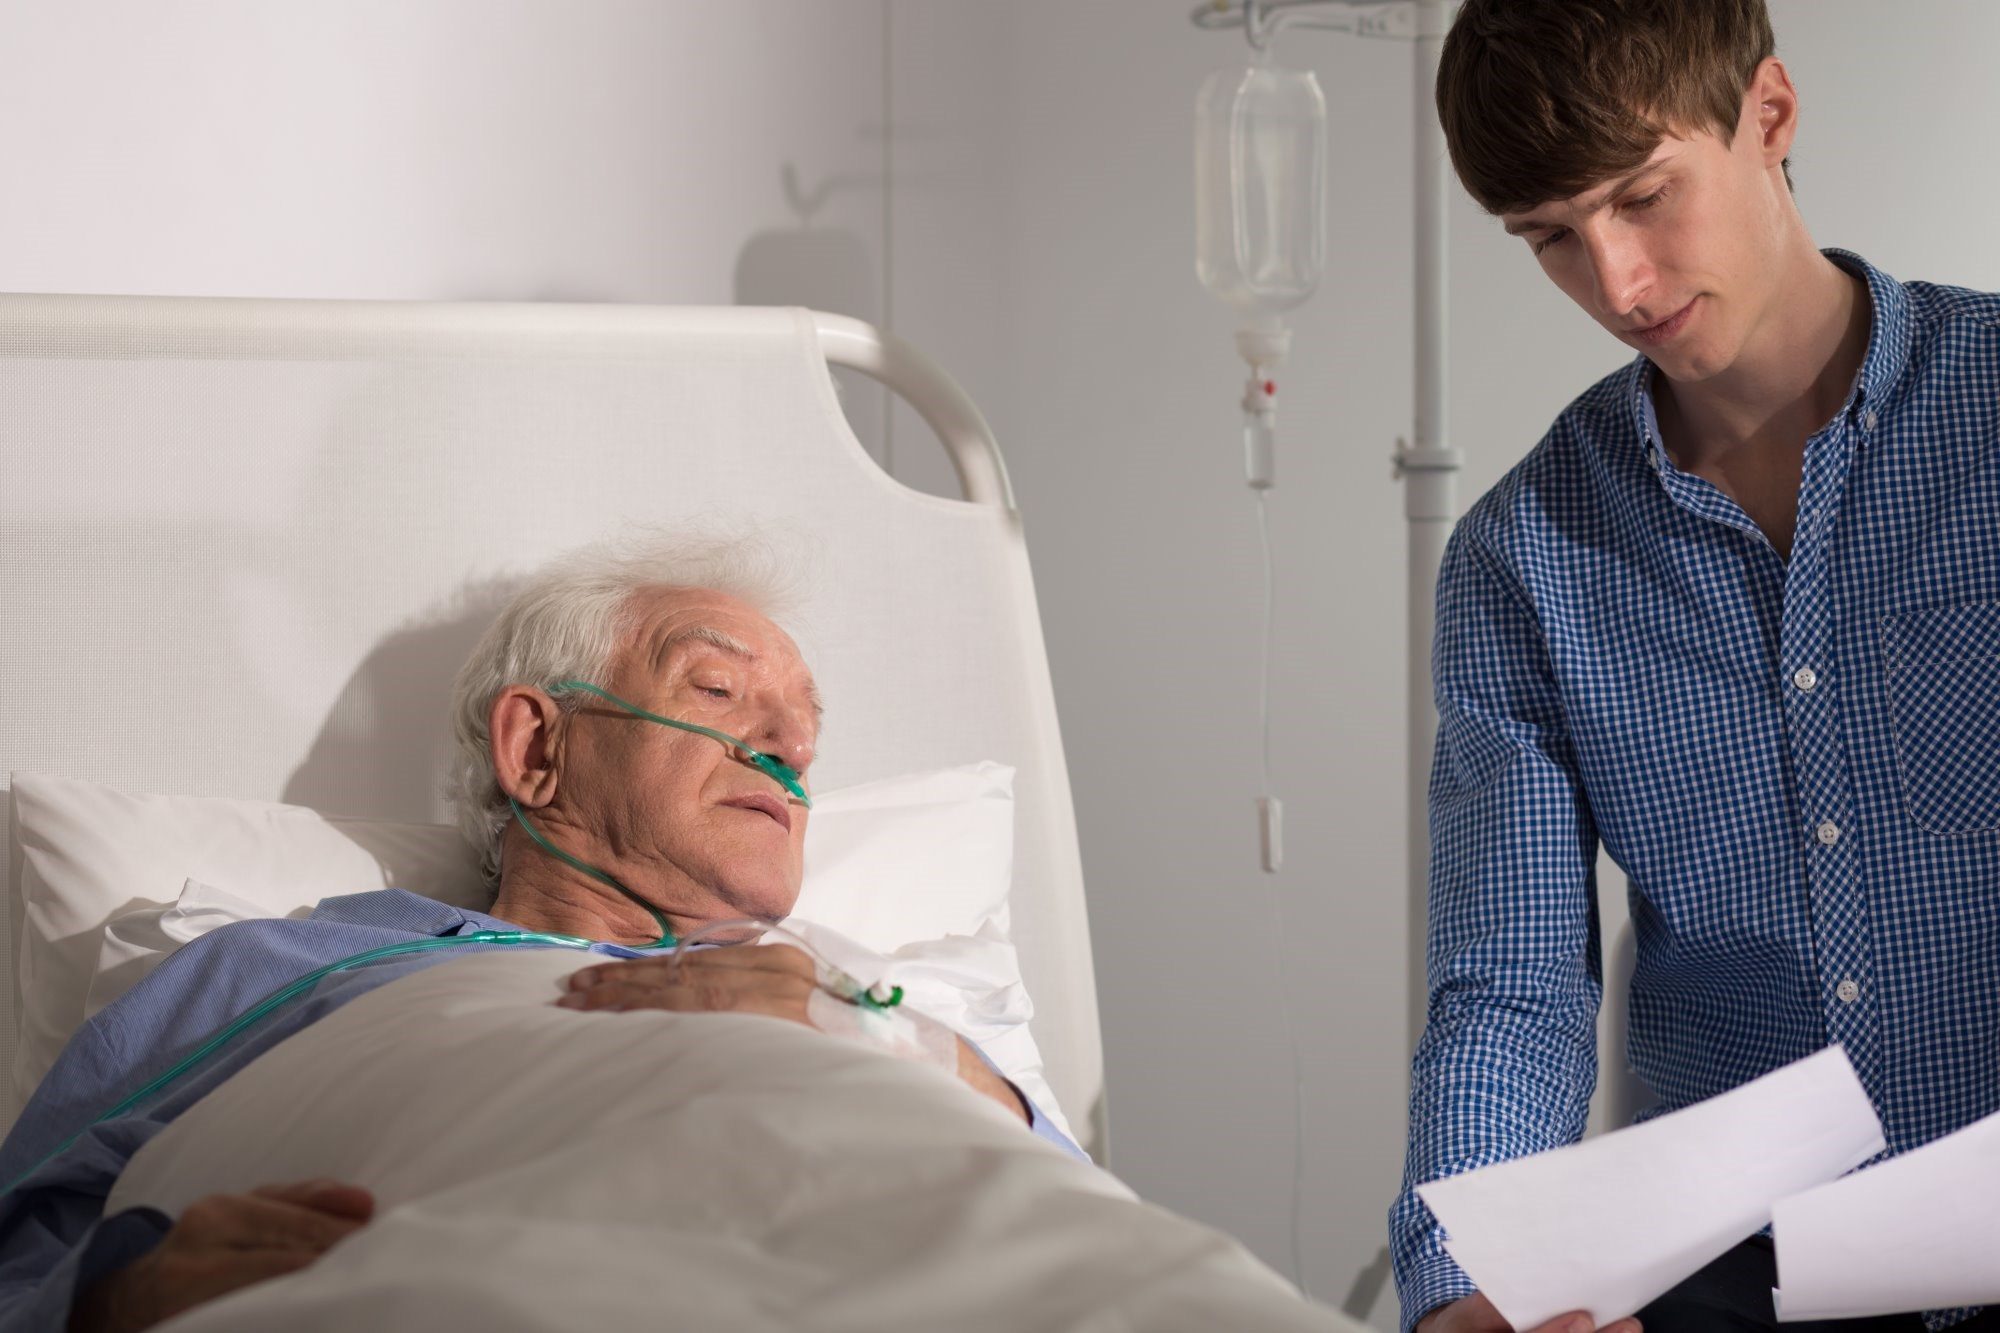 Cancer Survivors With STEMI at Increased Risk for Noncardiac Death